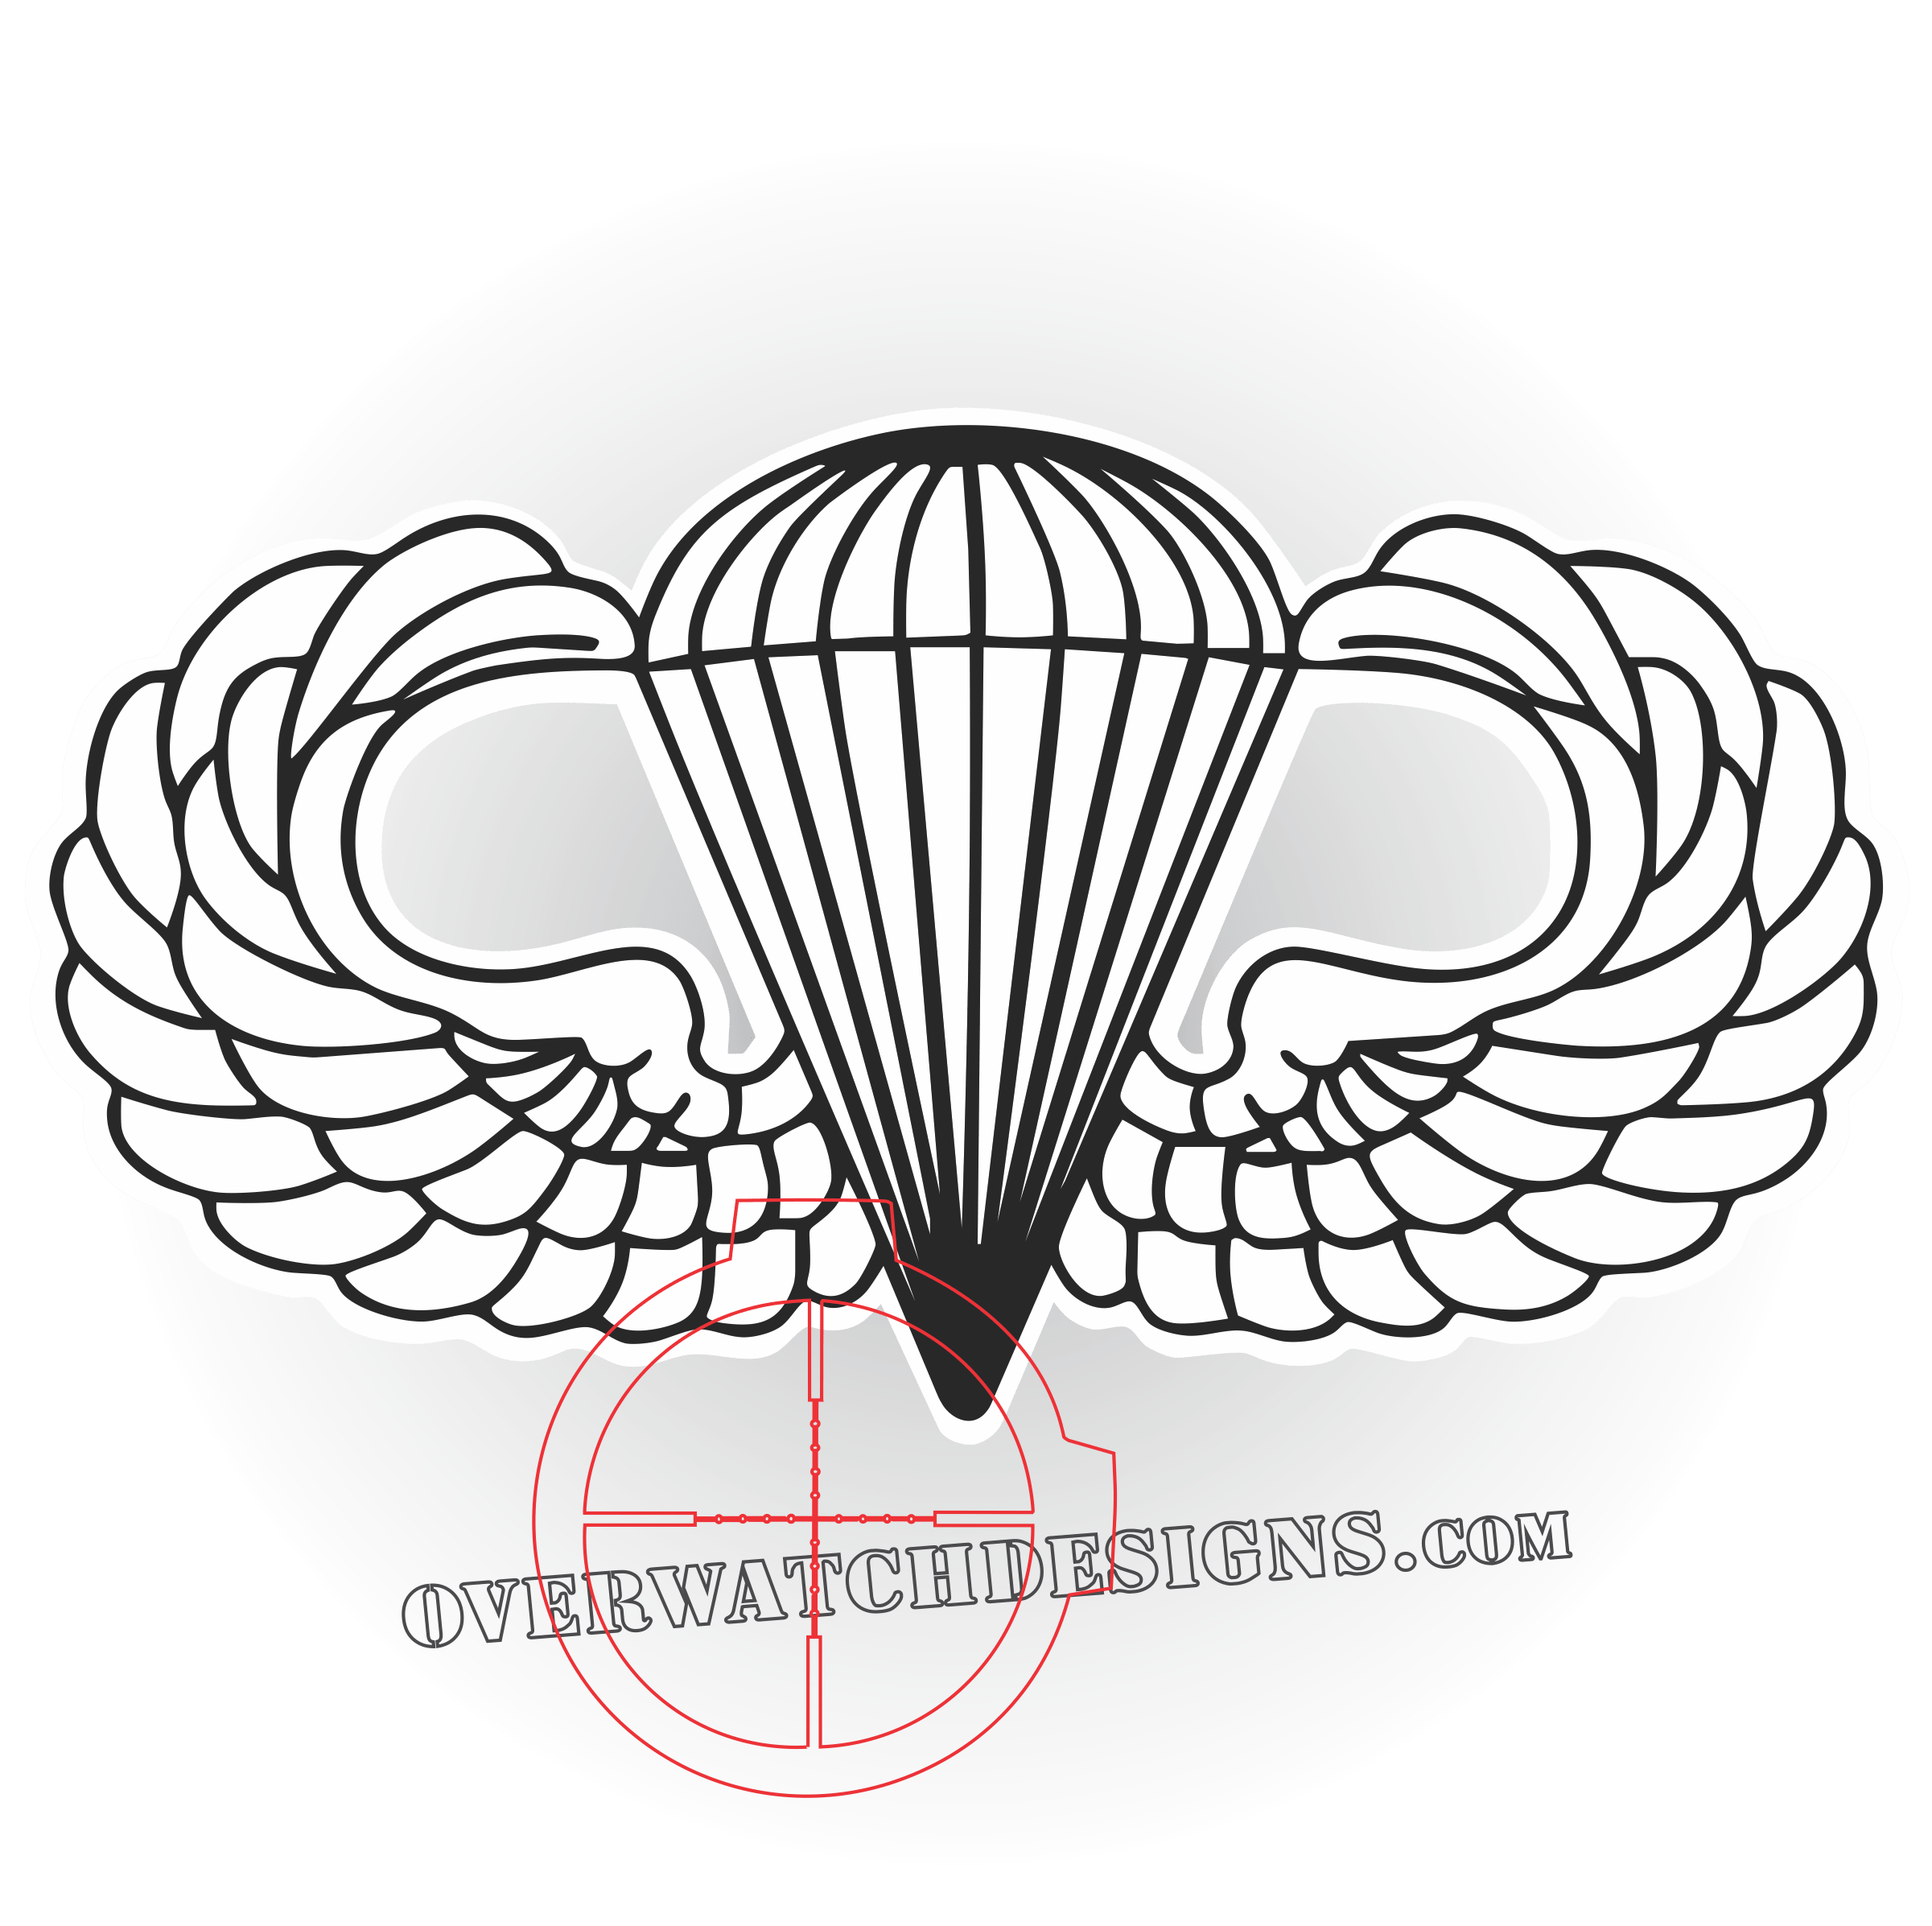 Paratrooper drawing at getdrawings. Wing clipart jumpmaster